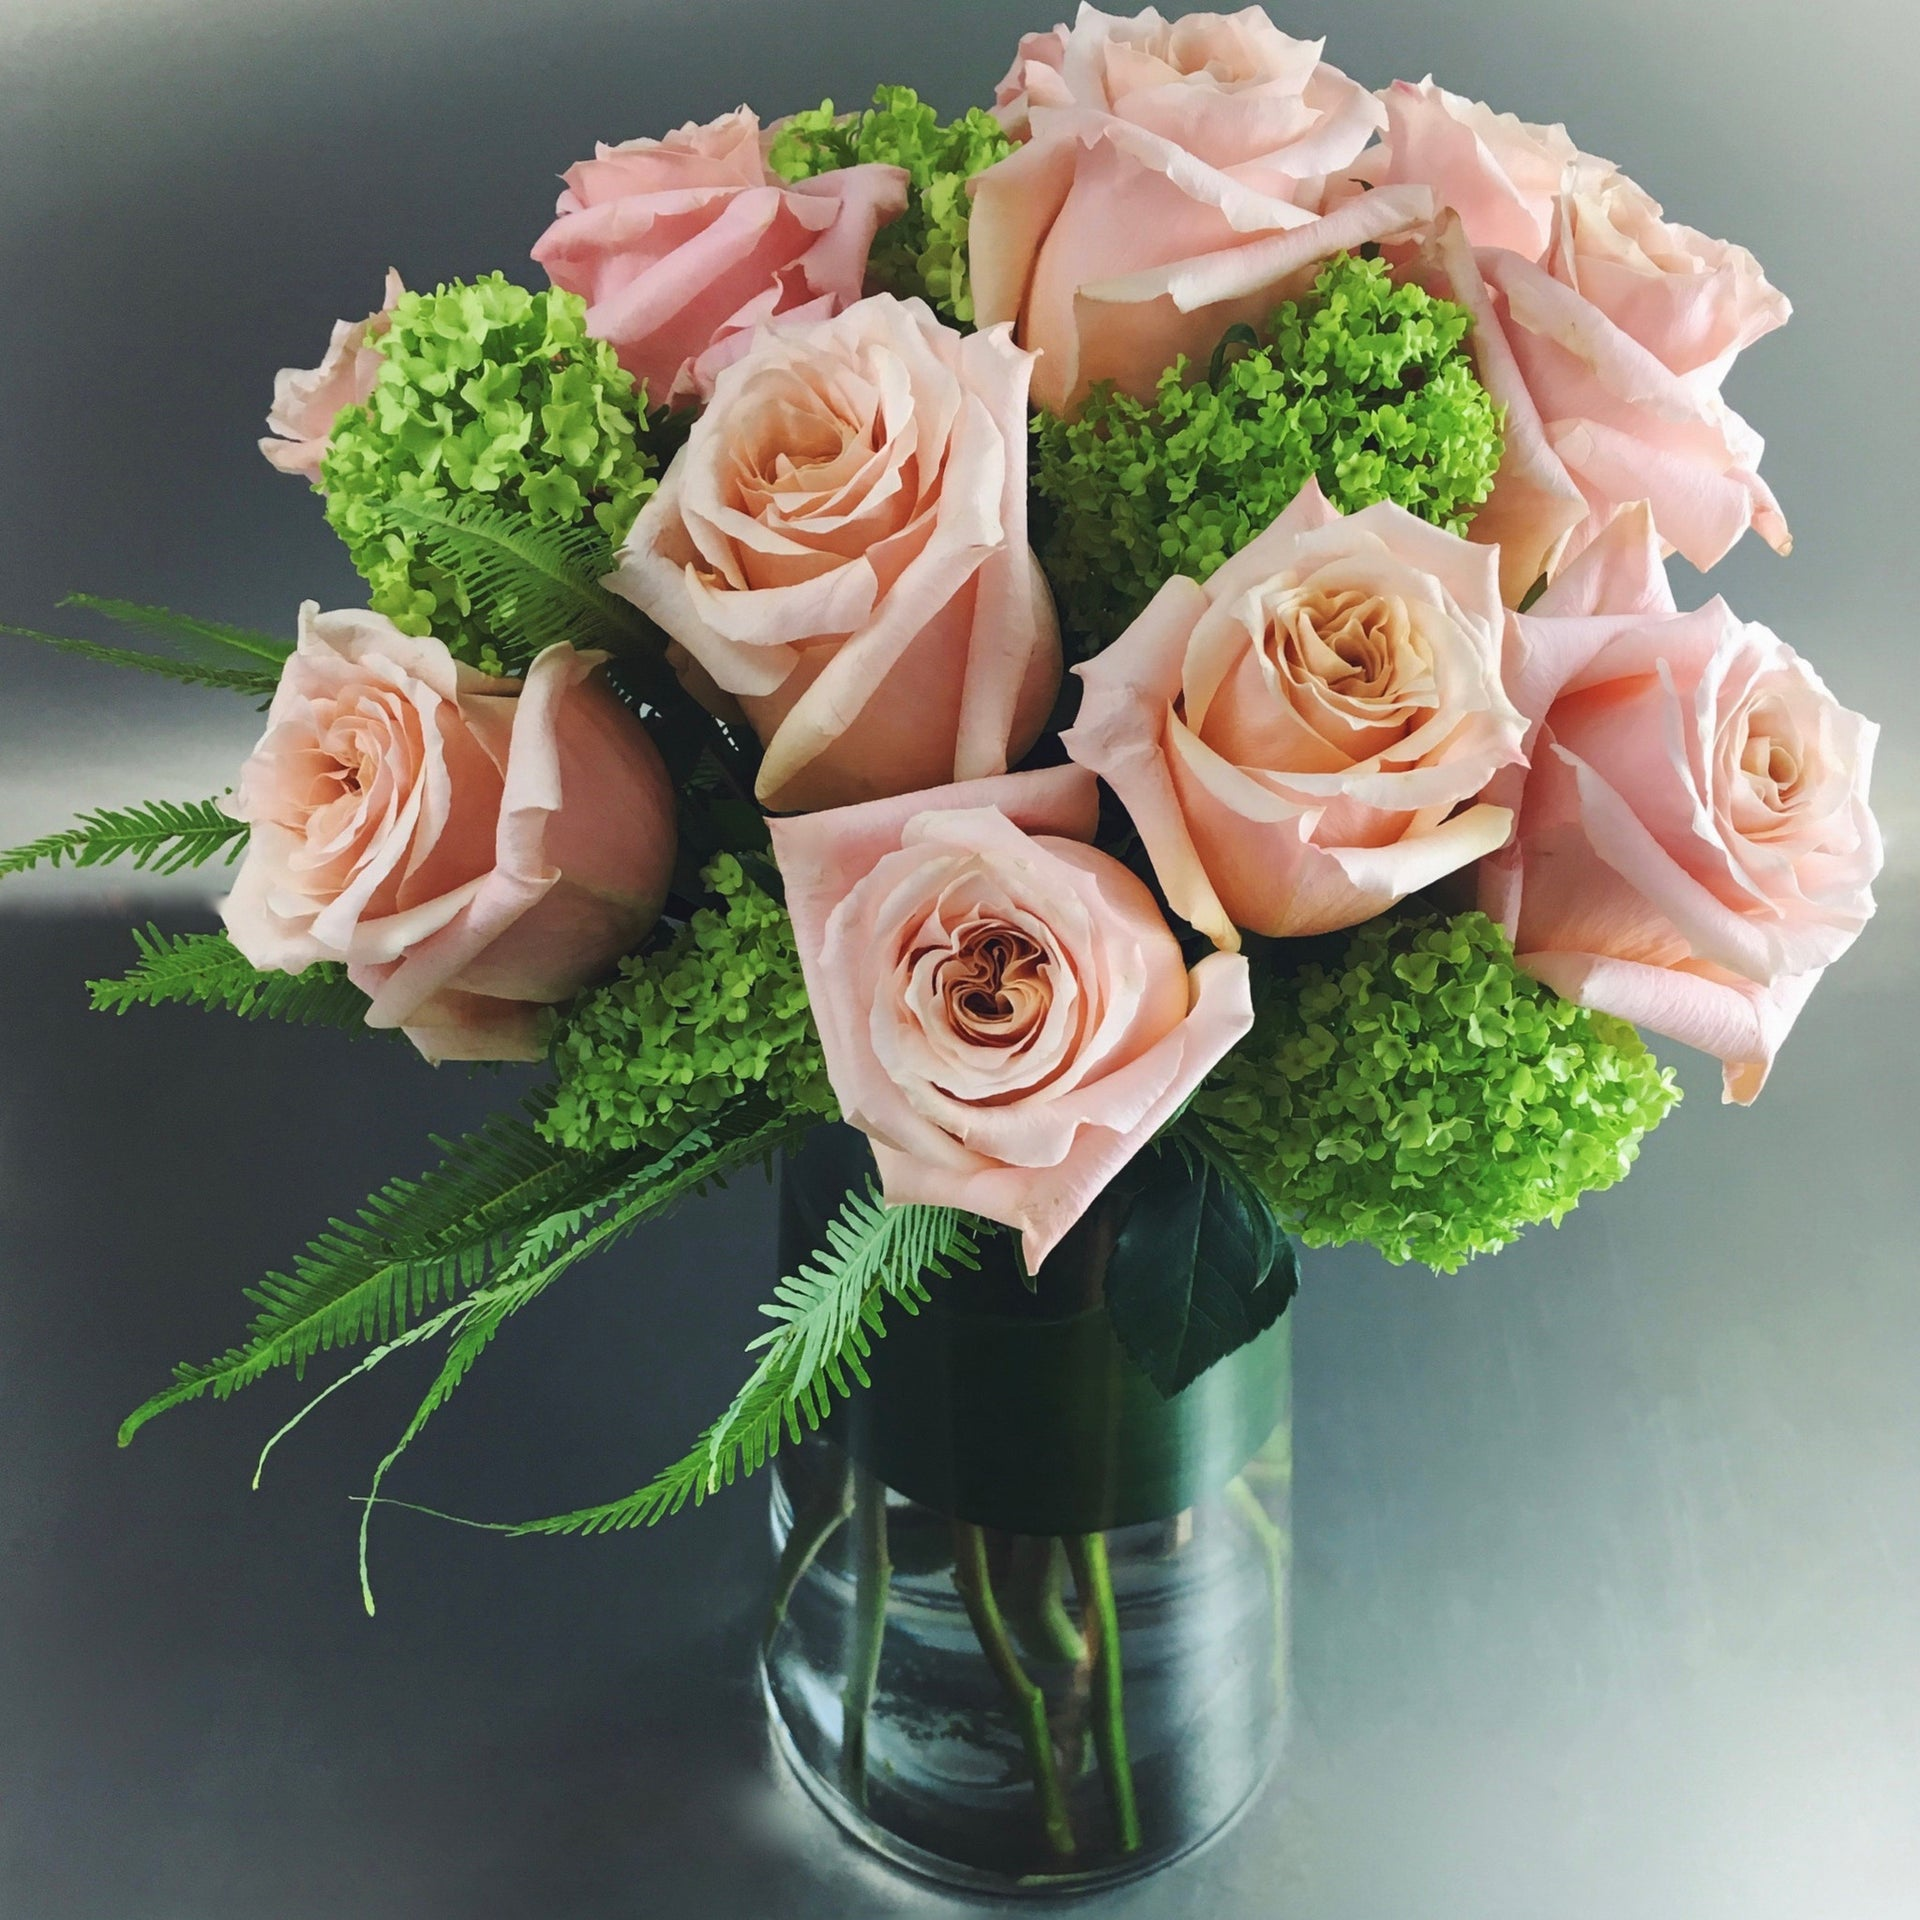 Long stemmed dozen roses accented by greenery in a vase.